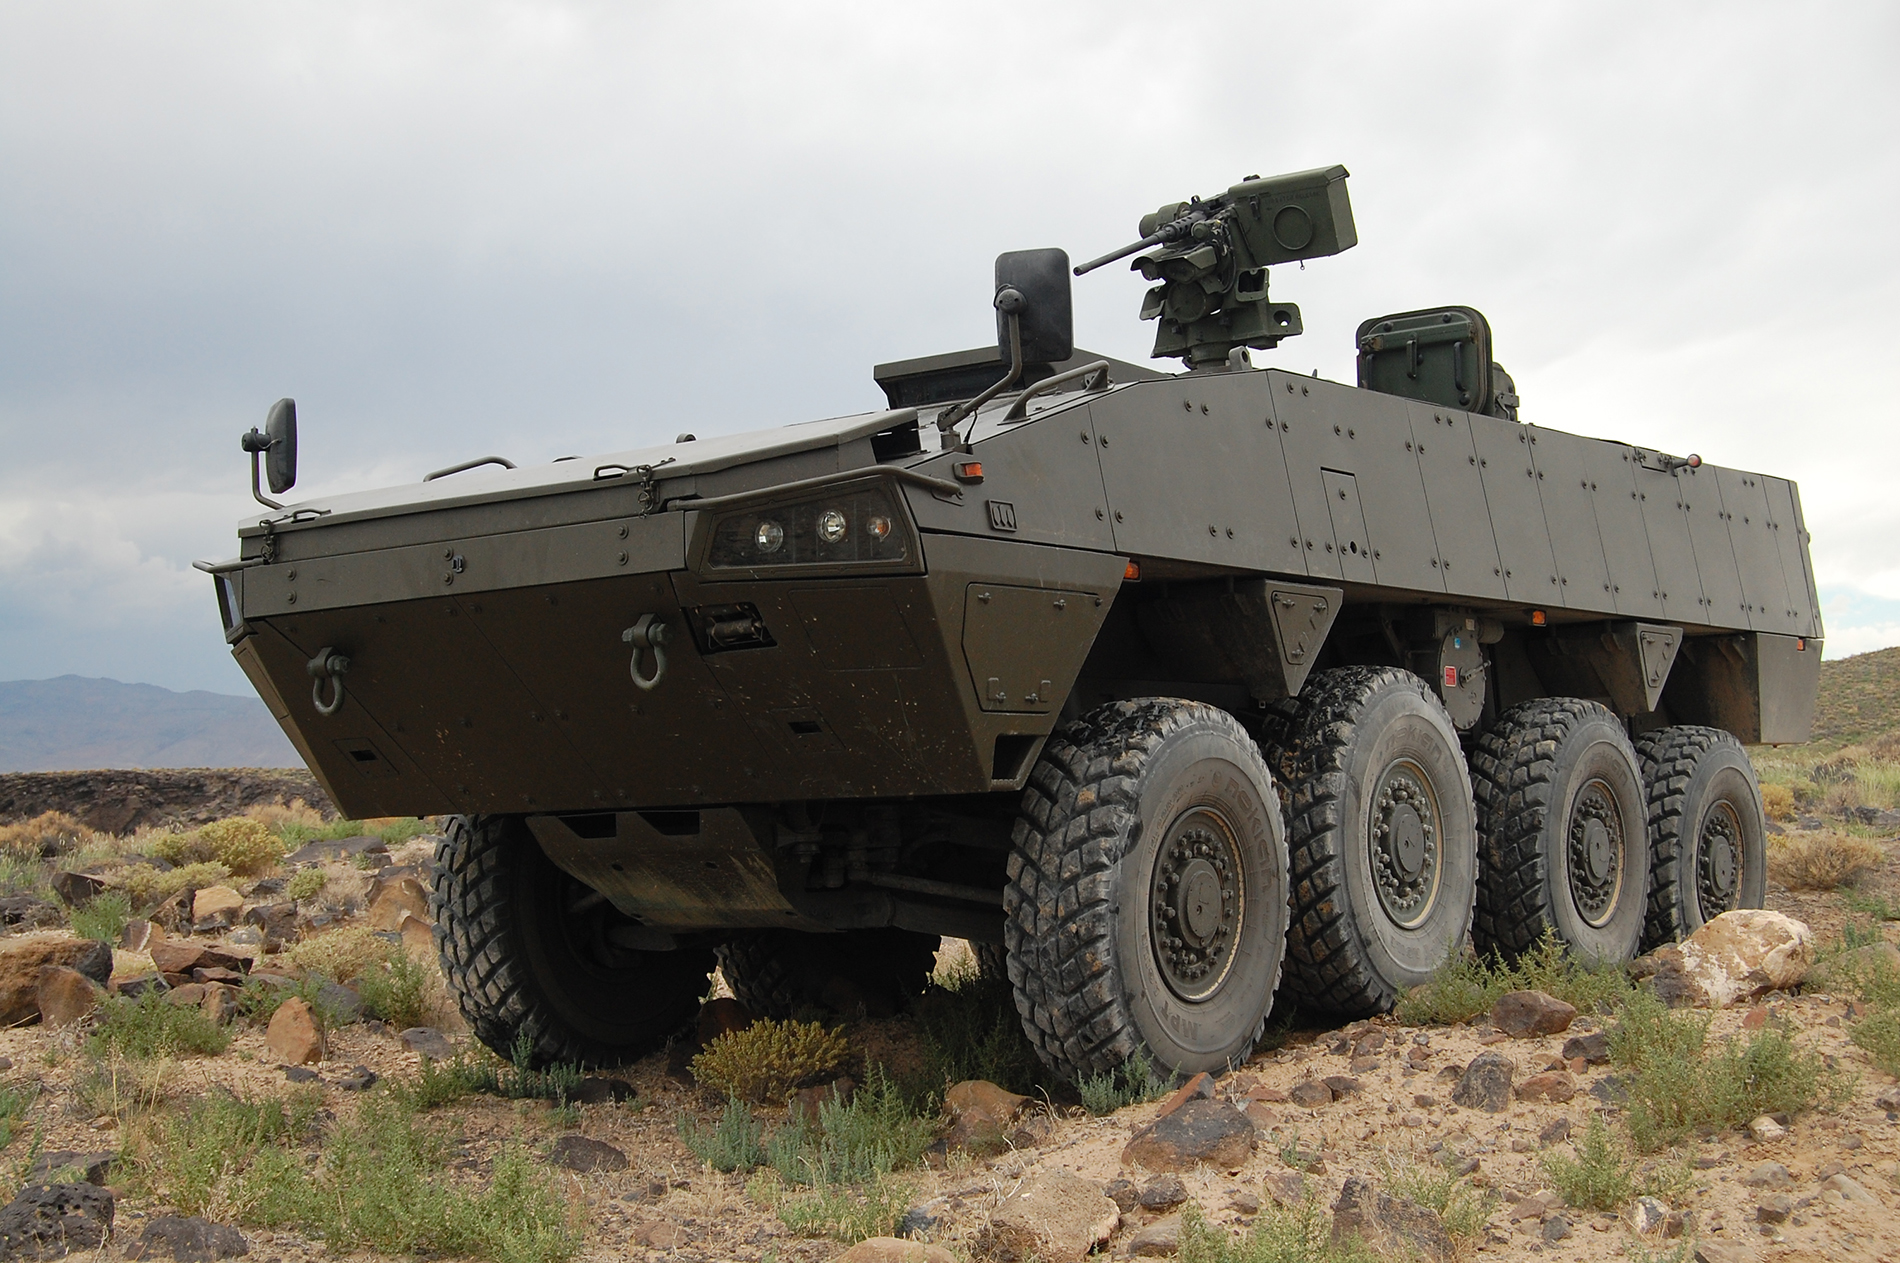 The Lockheed Martin Havoc vehicle based off of the Finnish Patria AMV and one of the likely competitors for the USMC ACV 1.1 competition. Lockheed Martin Photo